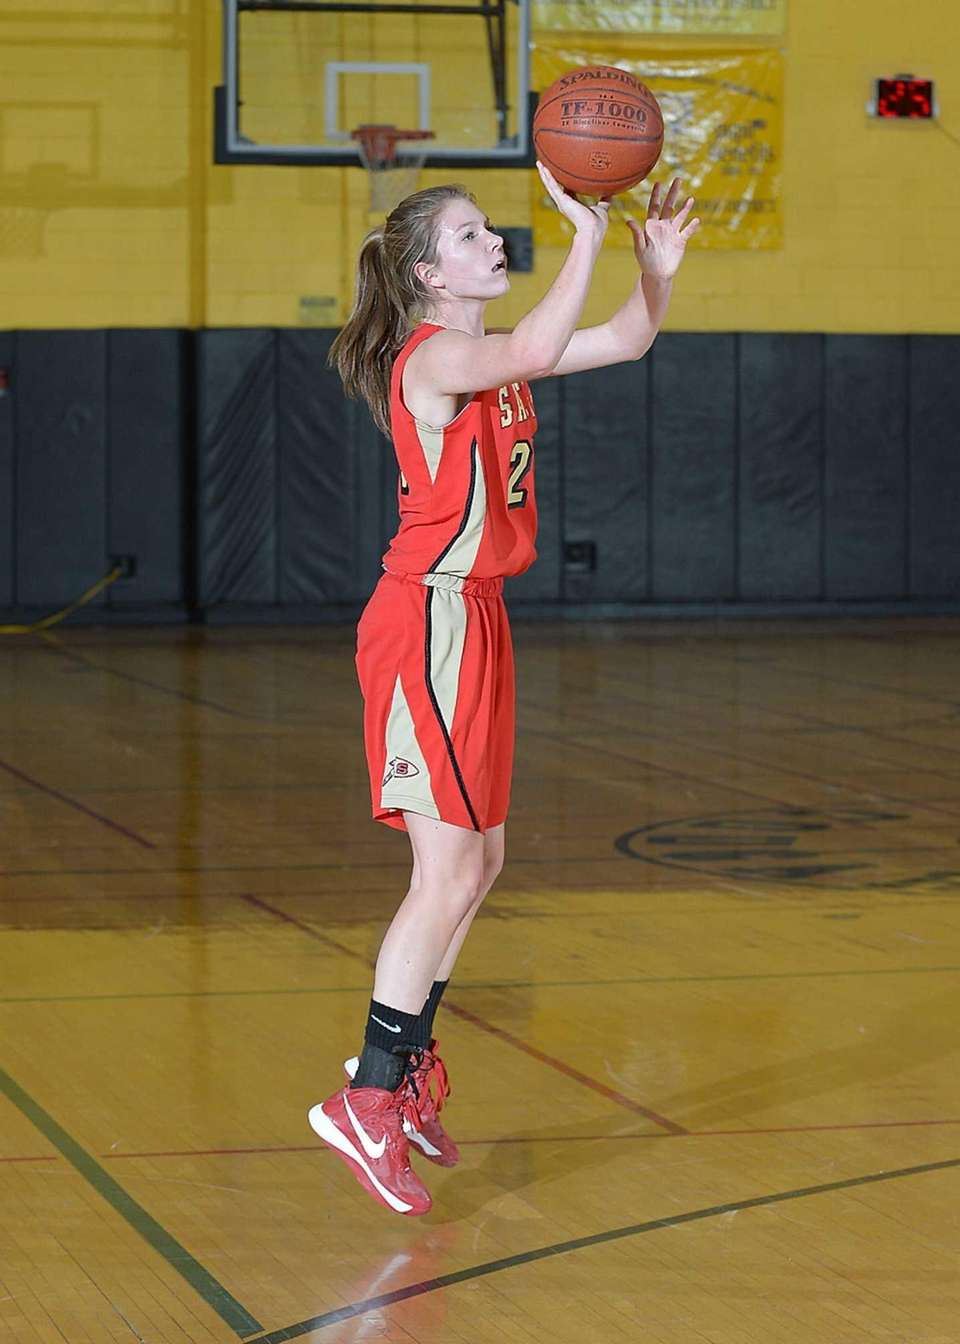 Sachem East's Kathie Doherty (25) shoots and makes